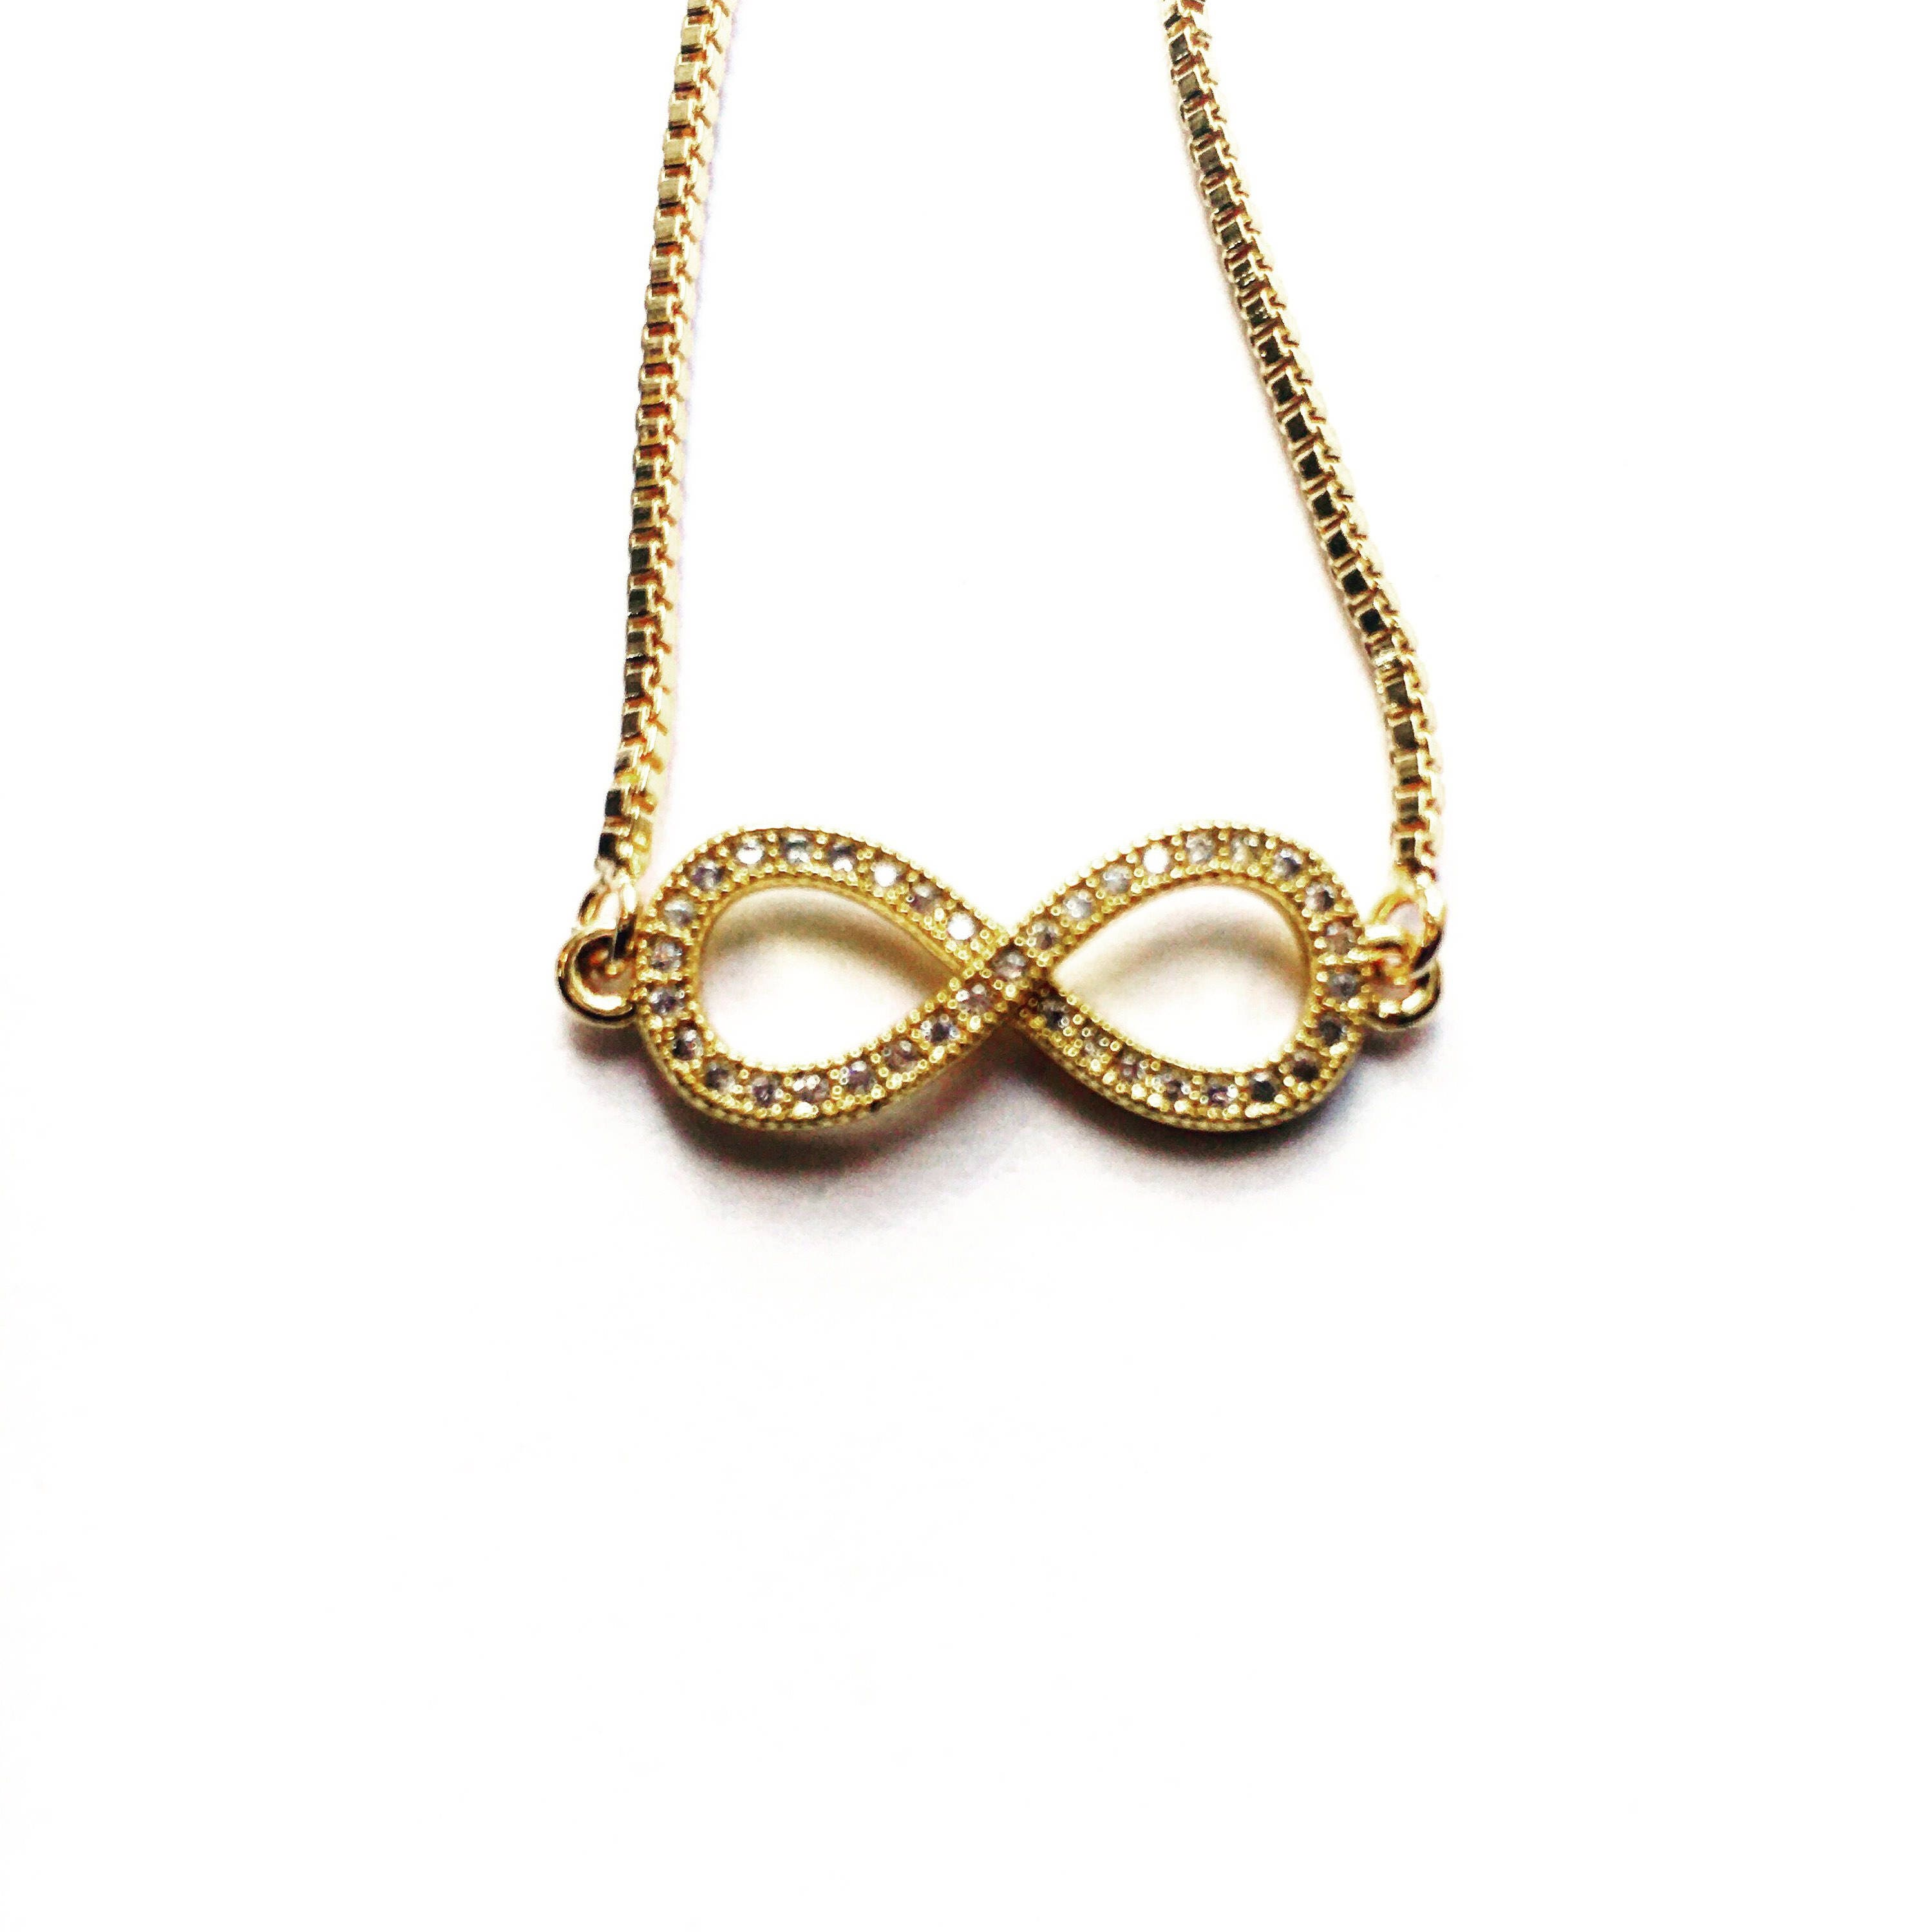 the my to her excited infinity bracelet dollars pin gold etsy shop latest addition share gift for under